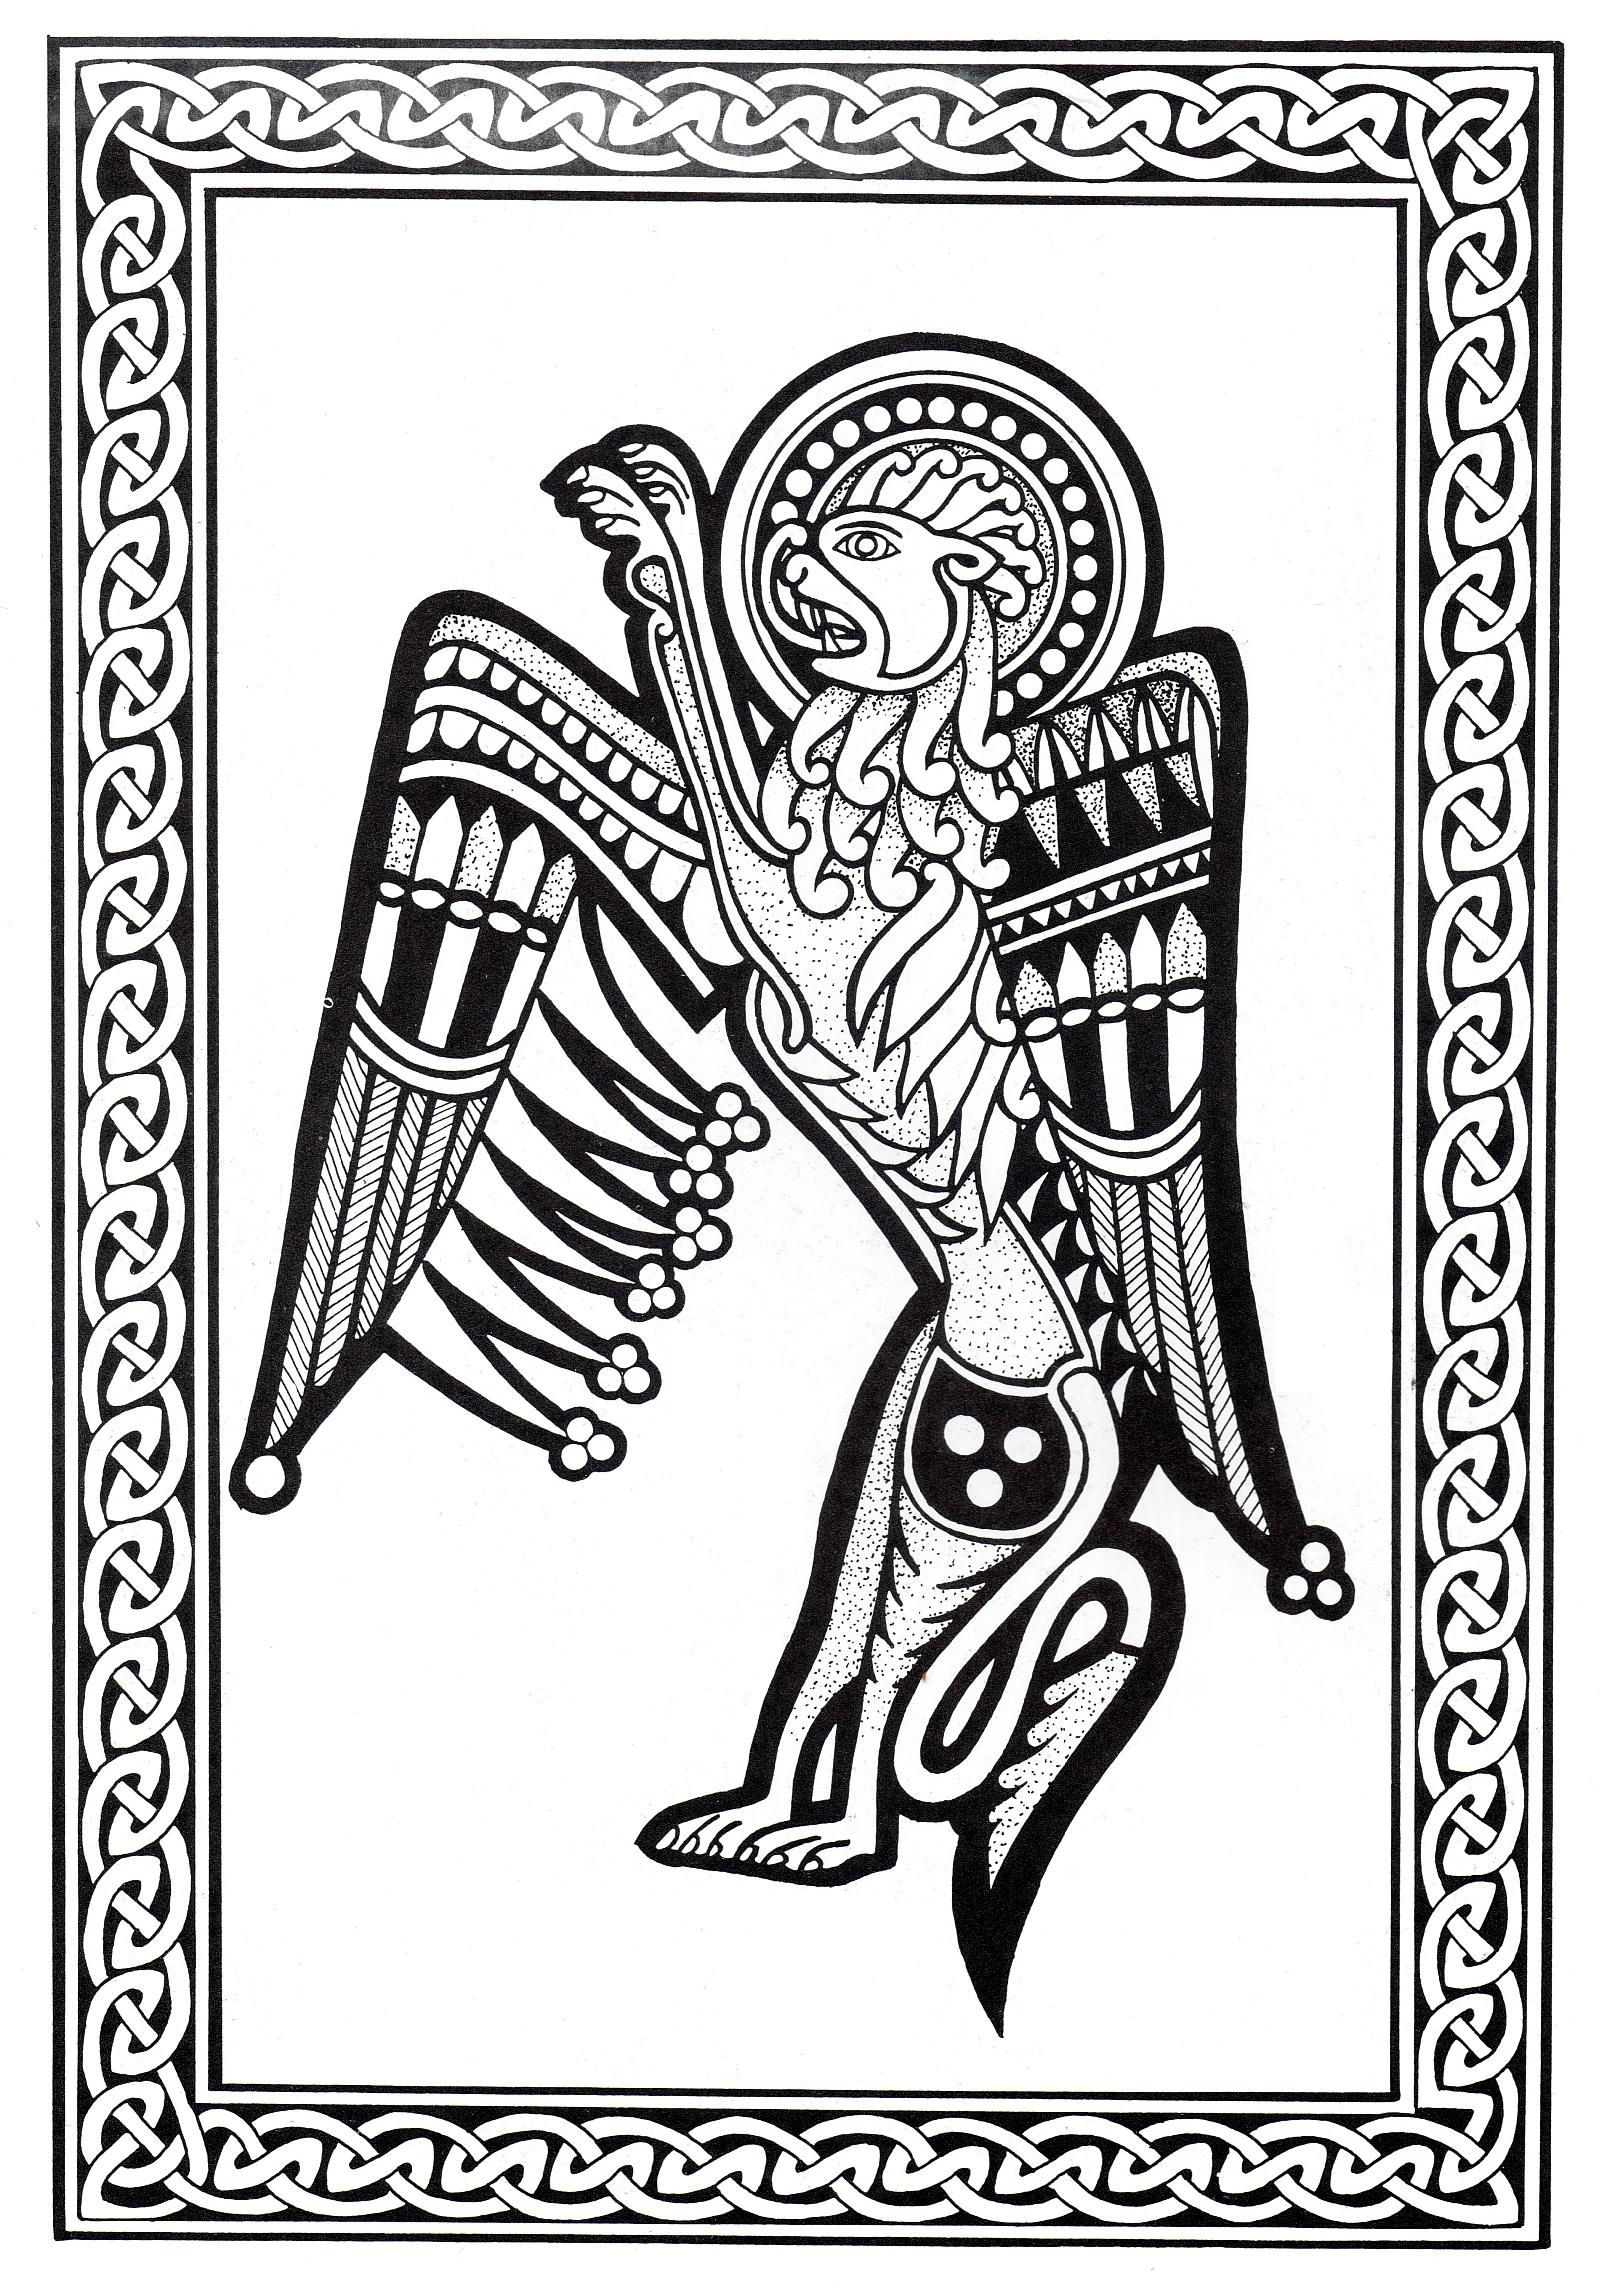 Magnificent Celtic art drawing, with lion with wings